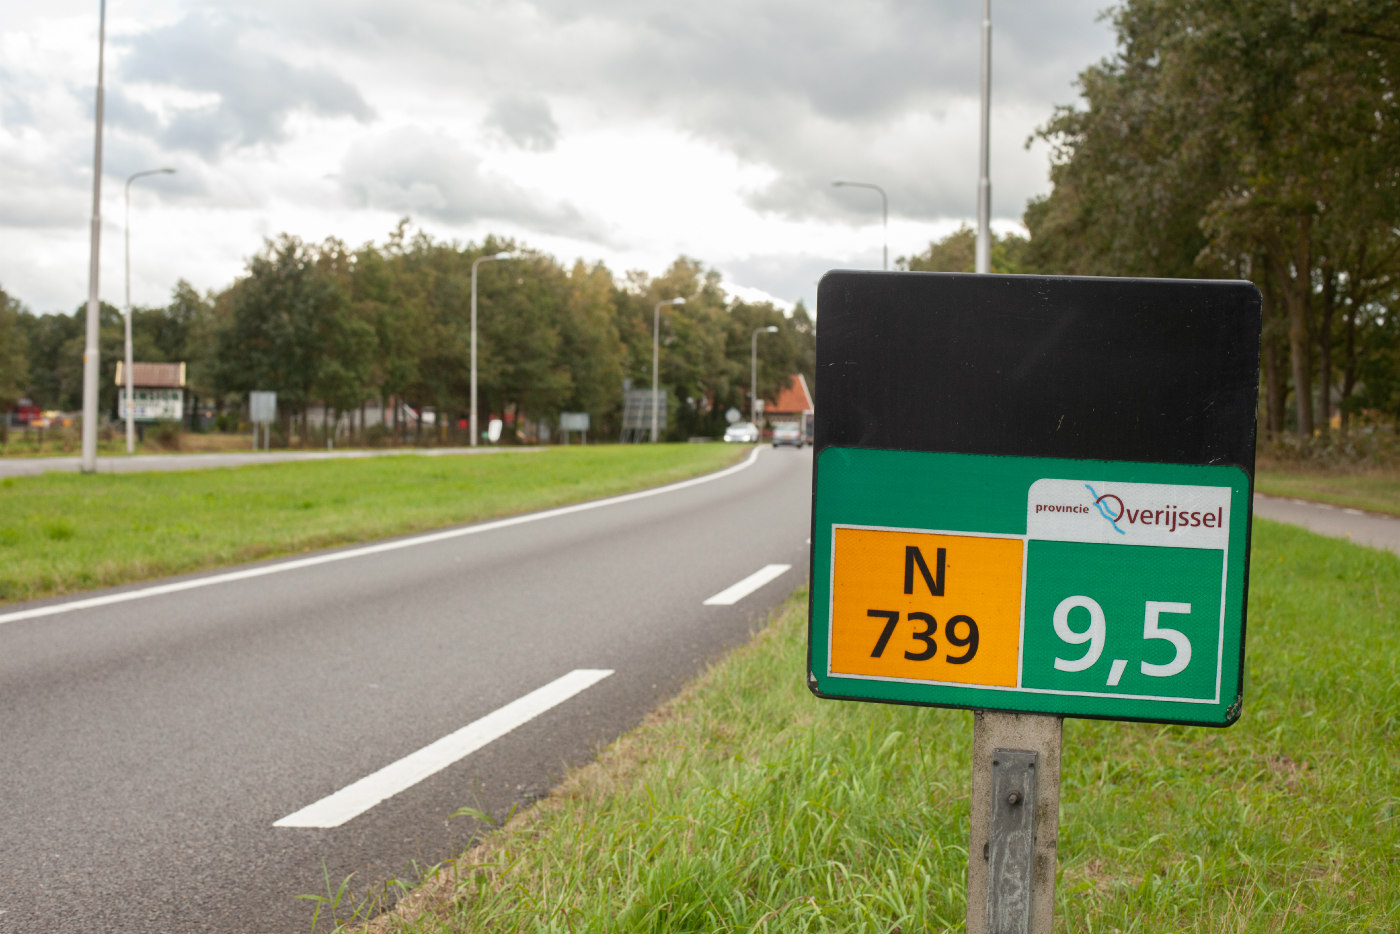 N739 Overijssel Road as a service Stephan Warmenhoven